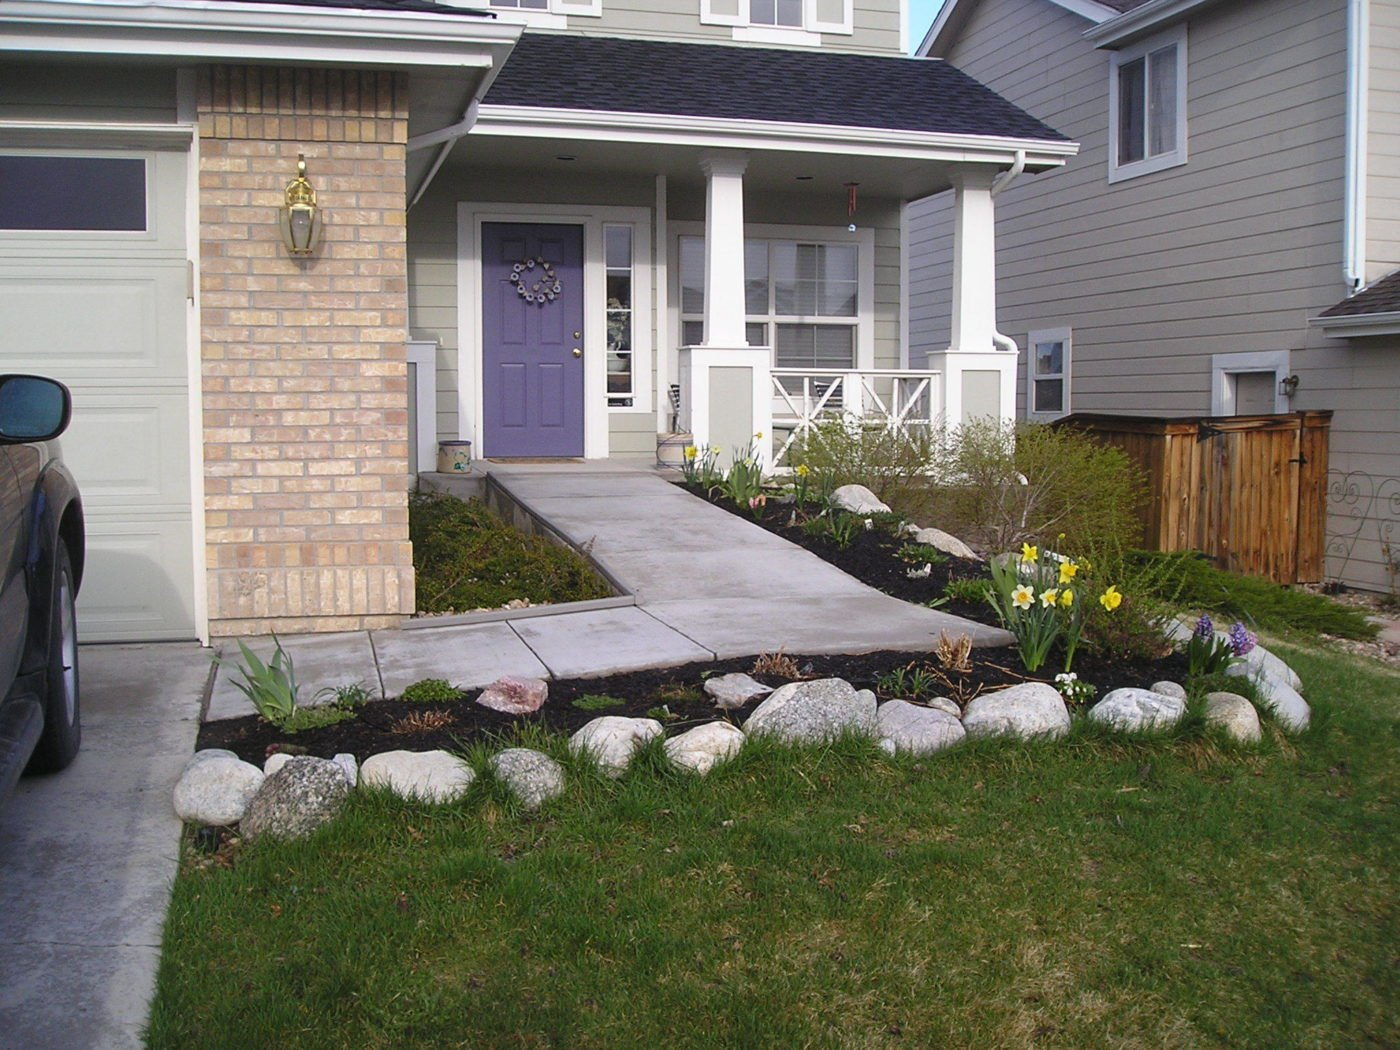 Custom concrete ramp accessible systems for Ada compliant homes